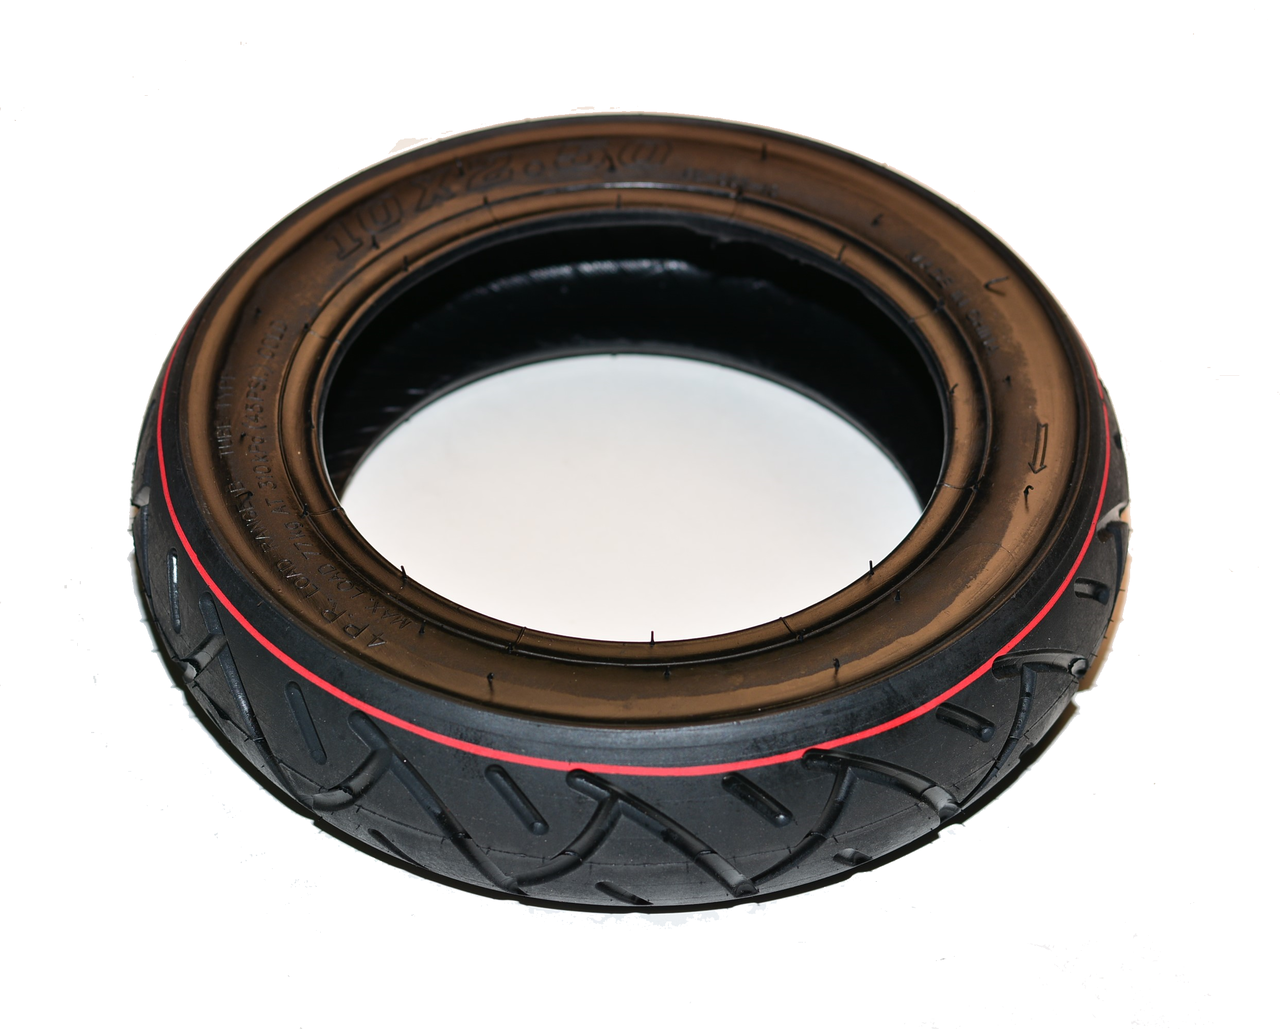 New! Racing Street Tires Size 3.00 x 10 for Dual Wheel kick Scooter